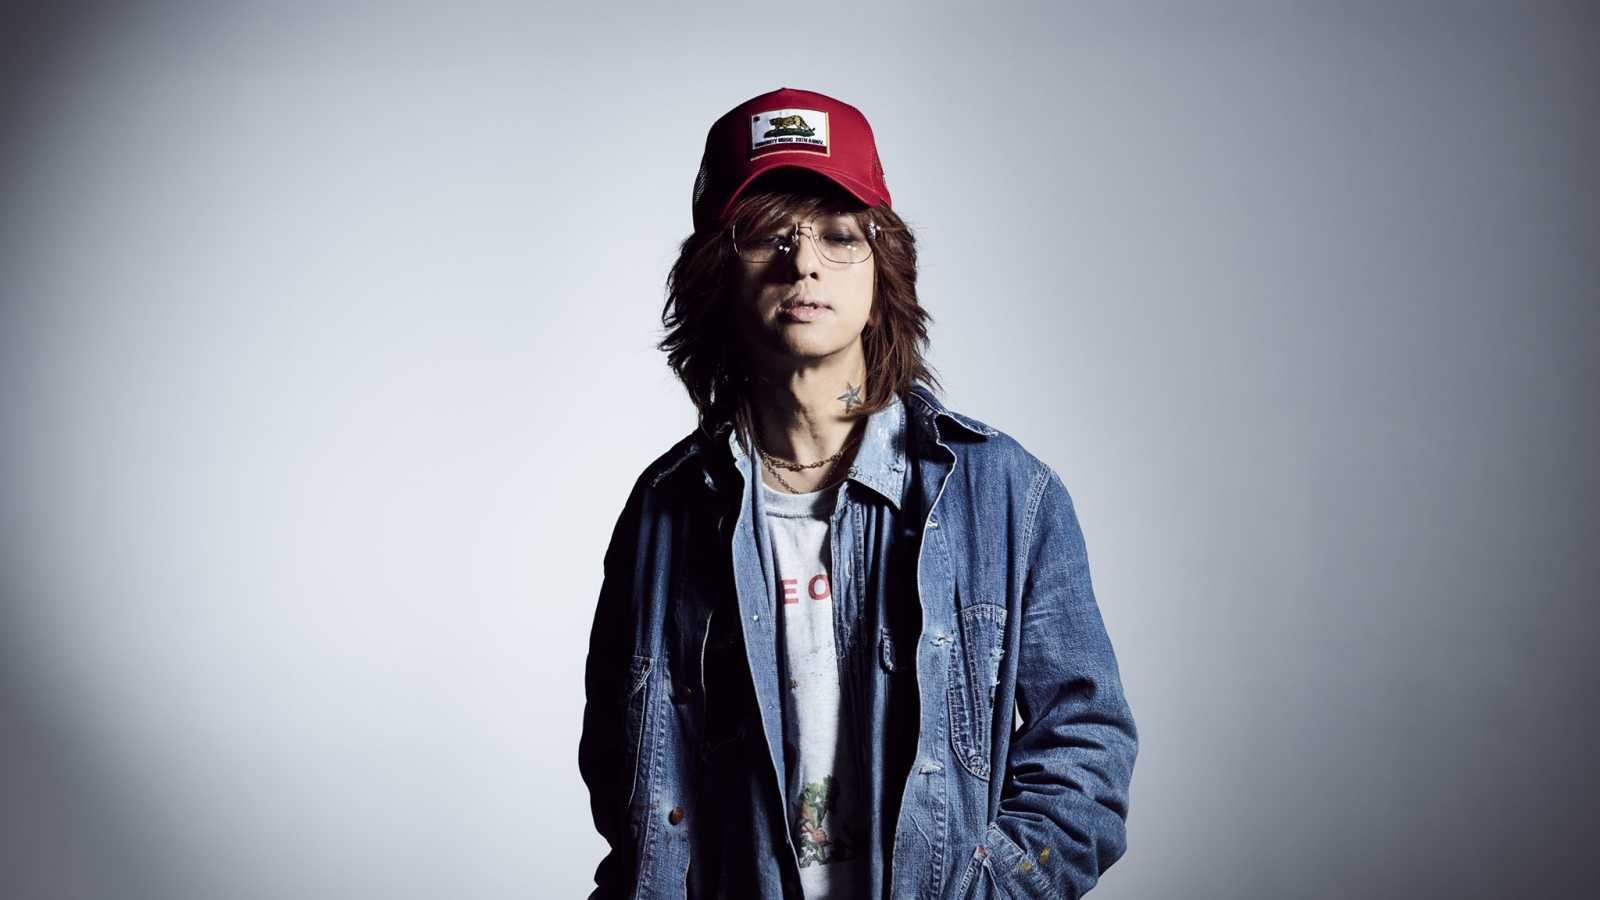 KIYOHARU lanzará un nuevo álbum © 2019 Loyal Code Artists. All rights reserved.